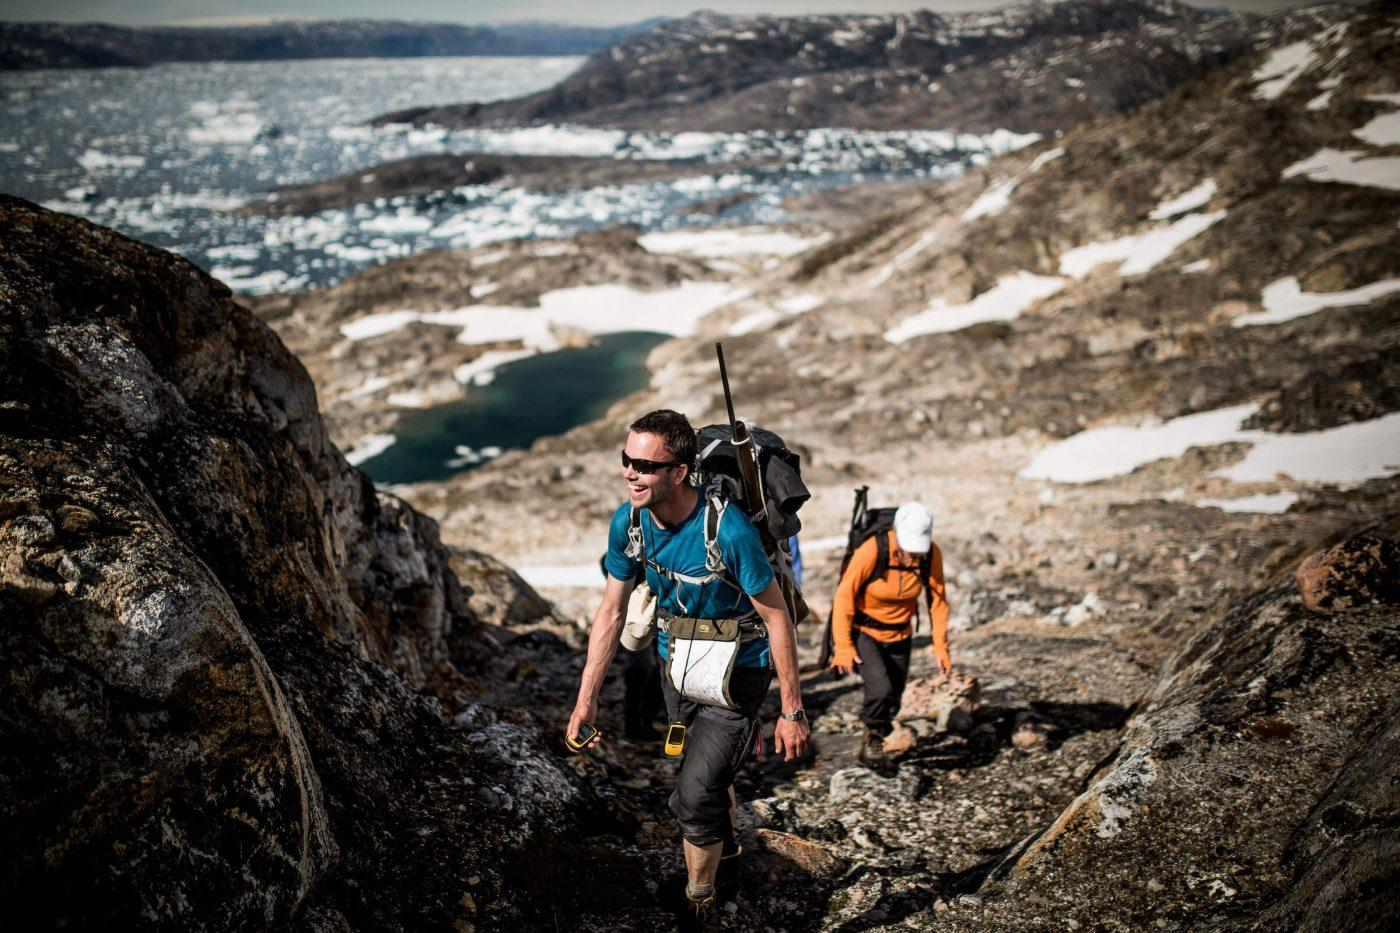 A Greenland Travel guide in East Greenland climbing a mountain in high spirits near Tiniteqilaaq. By Mads Pihl